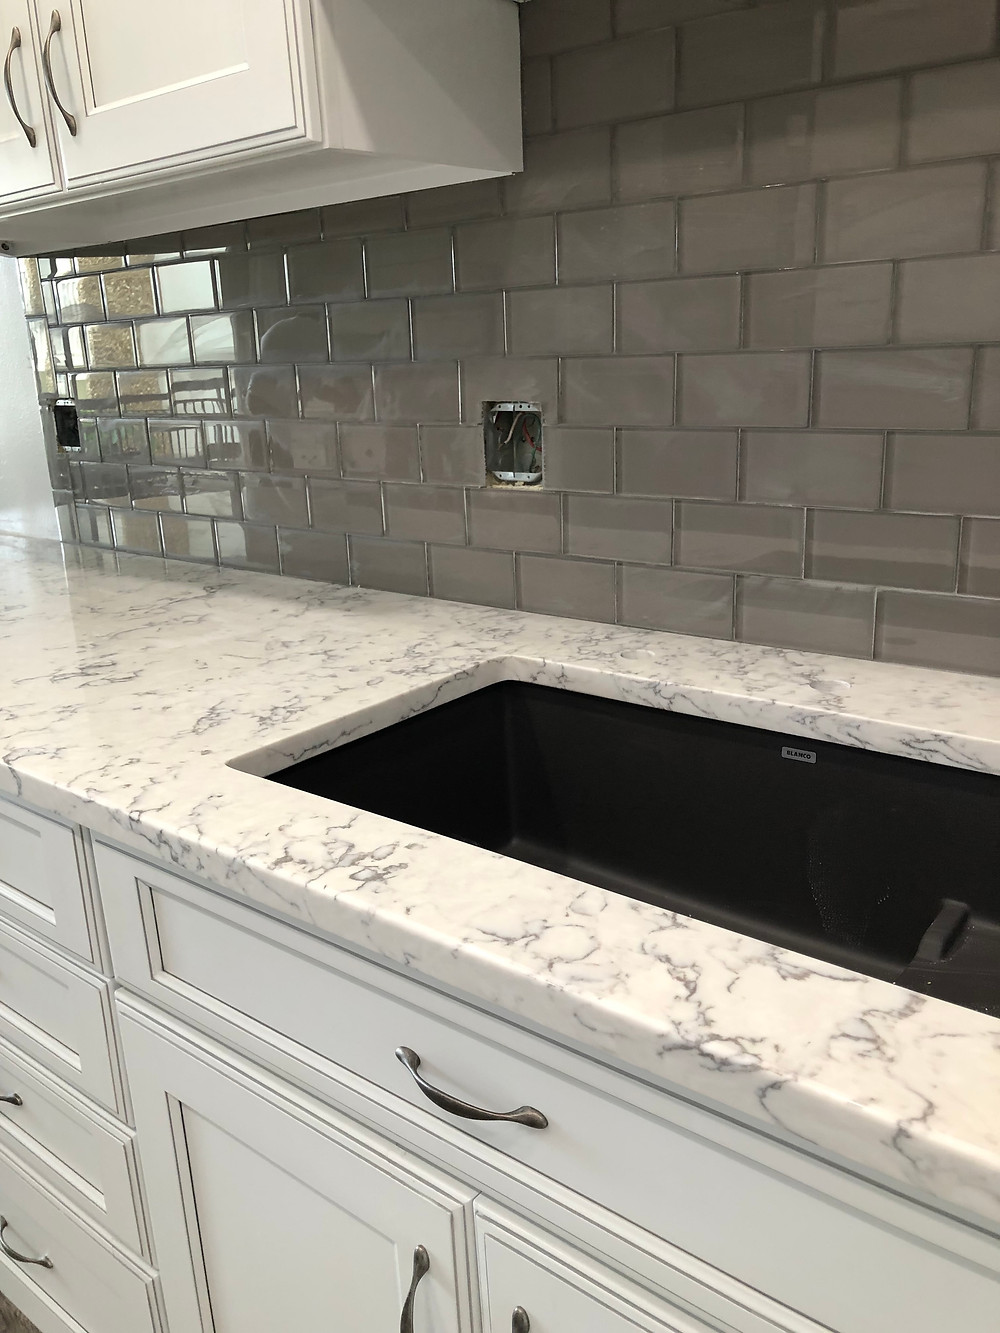 quartz countertops and tile store and installer in Boca Raton FL, contact Stone and Quartz LLC :)